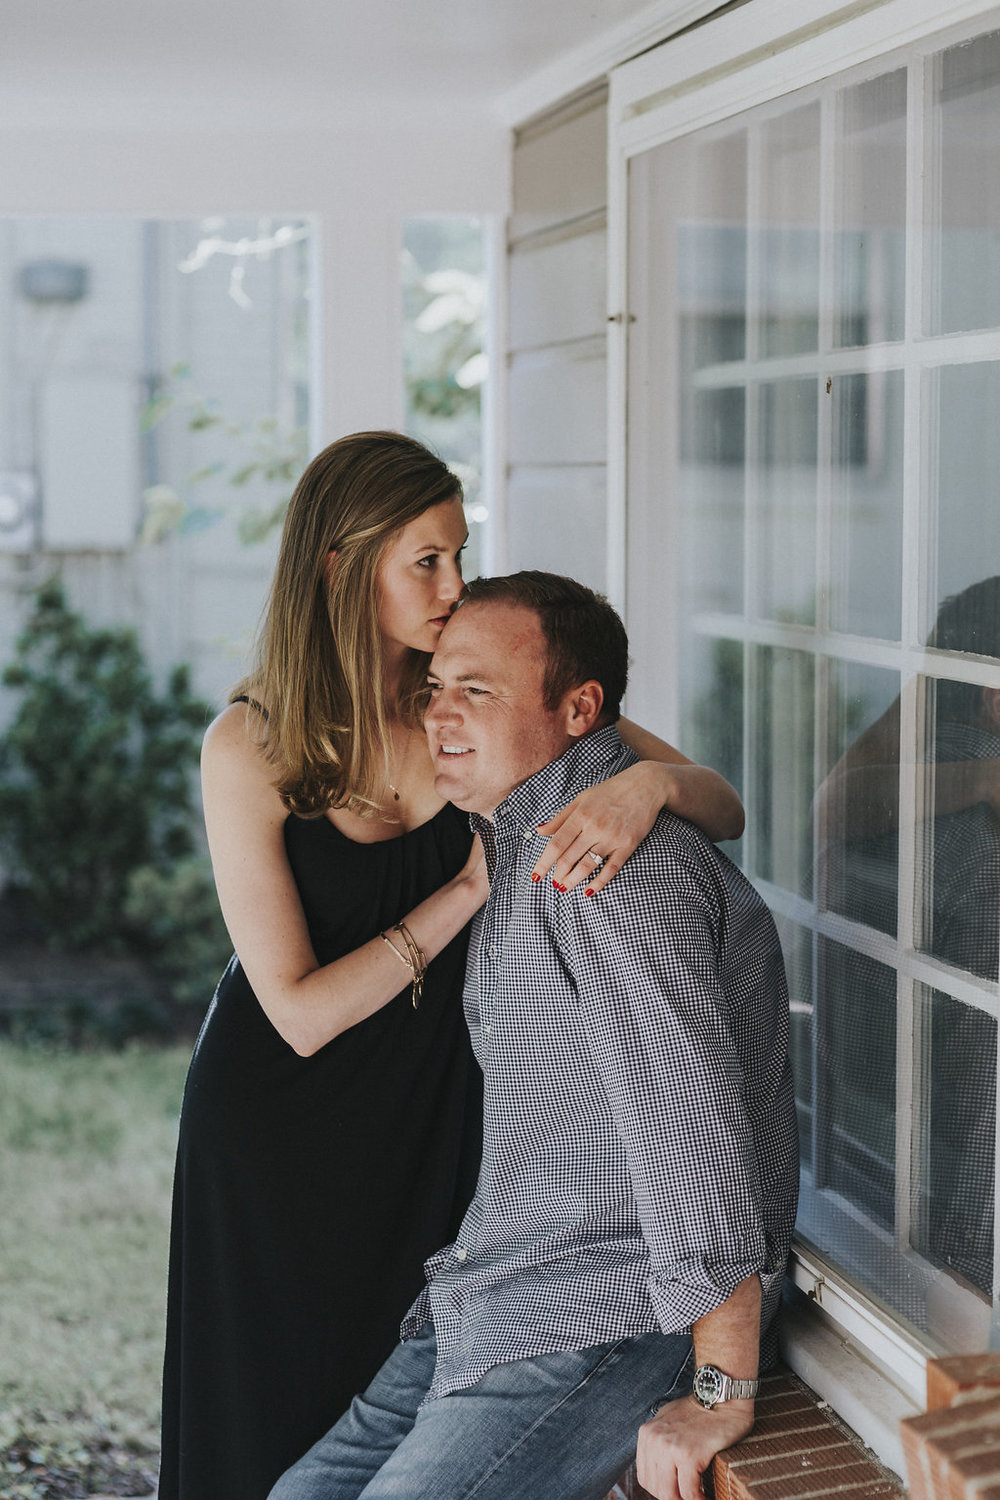 Kaitlyn Stoddard Wedding Photography Tennessee kiss on fiancé's forehead